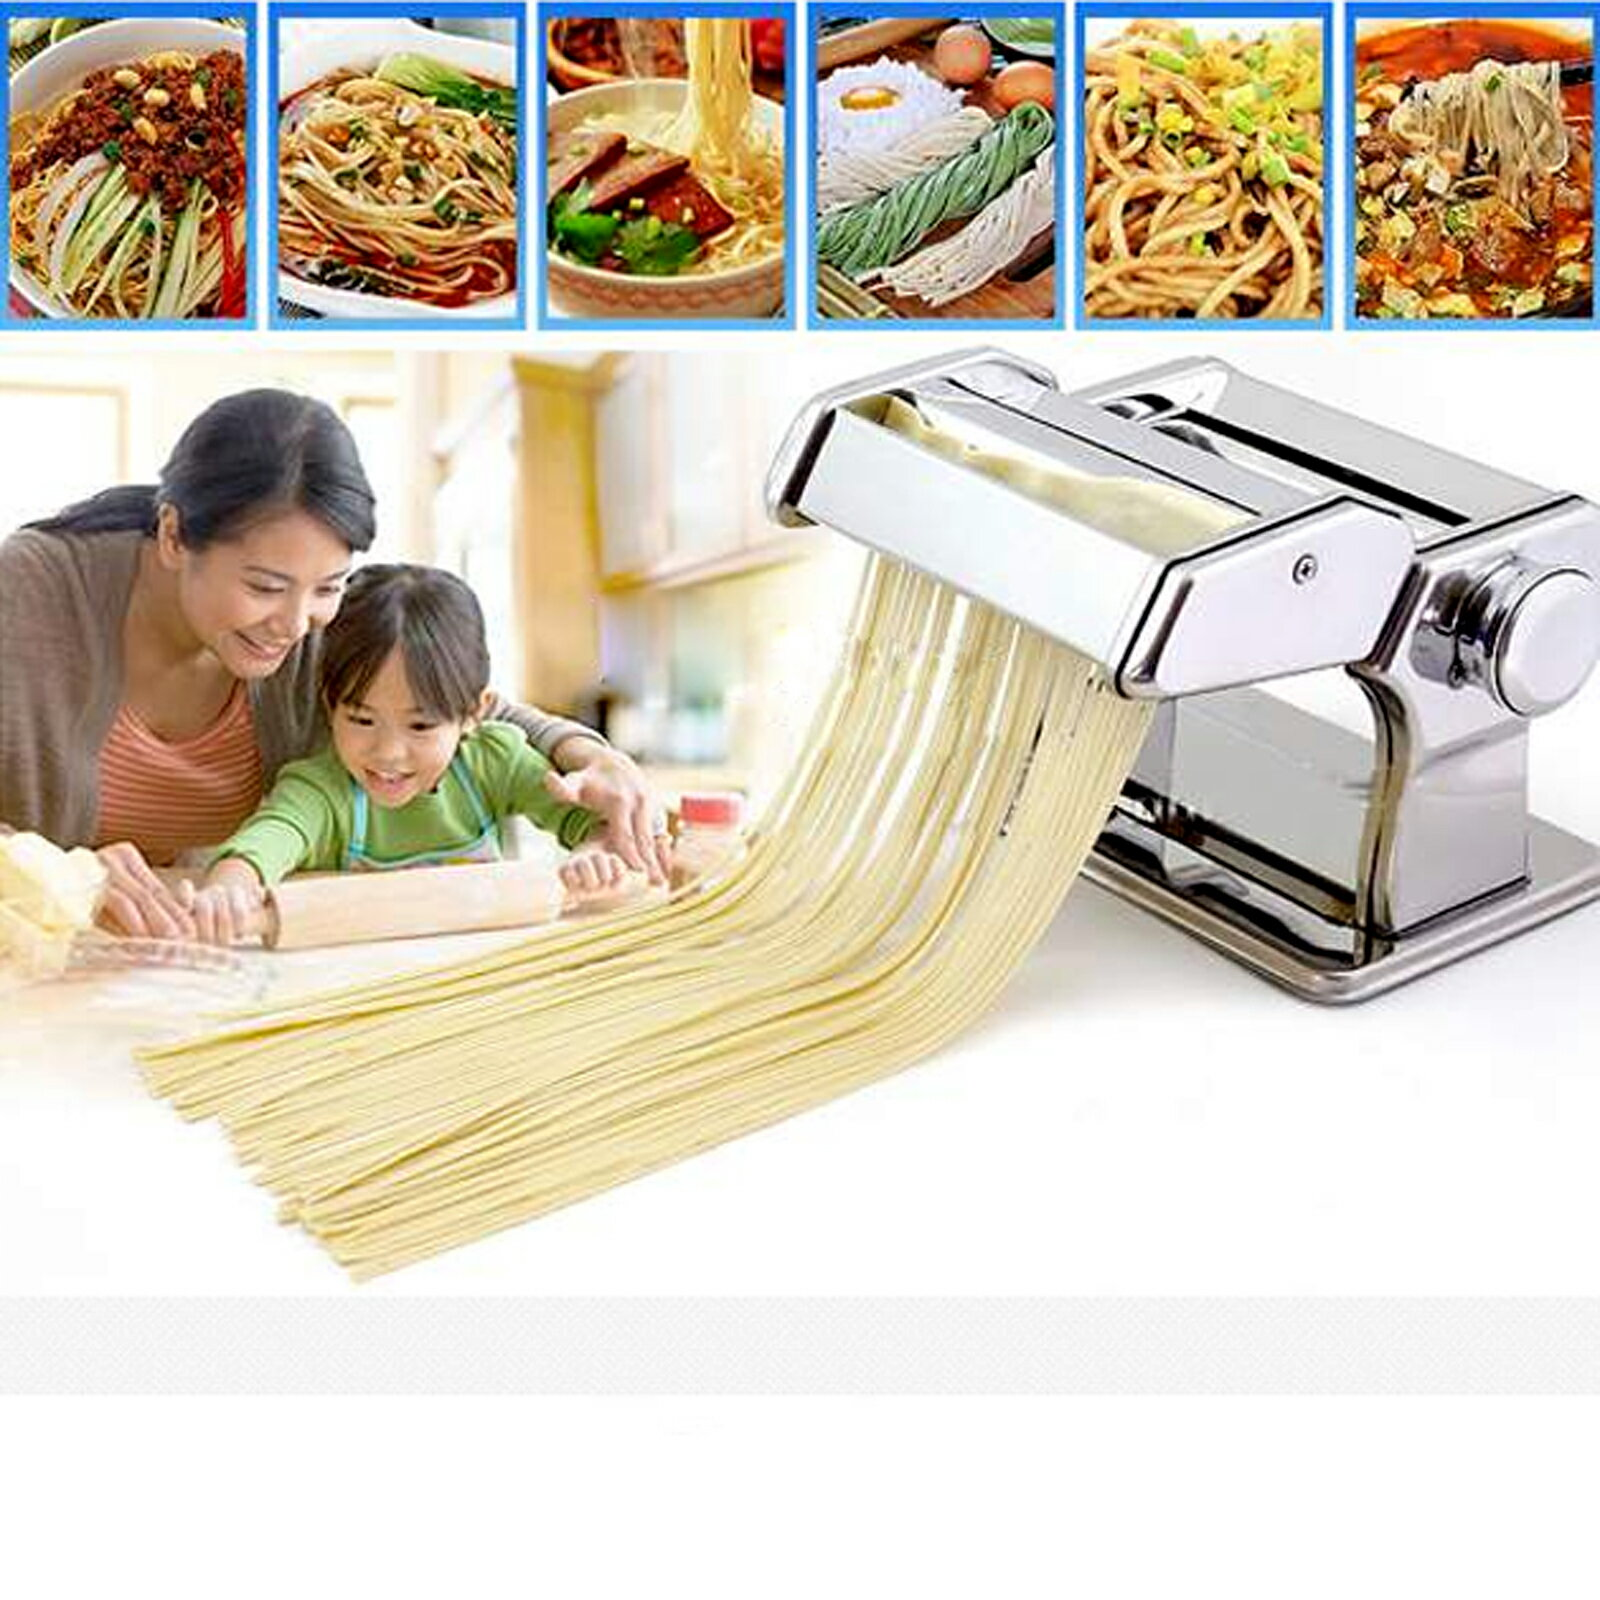 Removable Pasta Make Roller Machine Dough Fresh Noodle Making 2